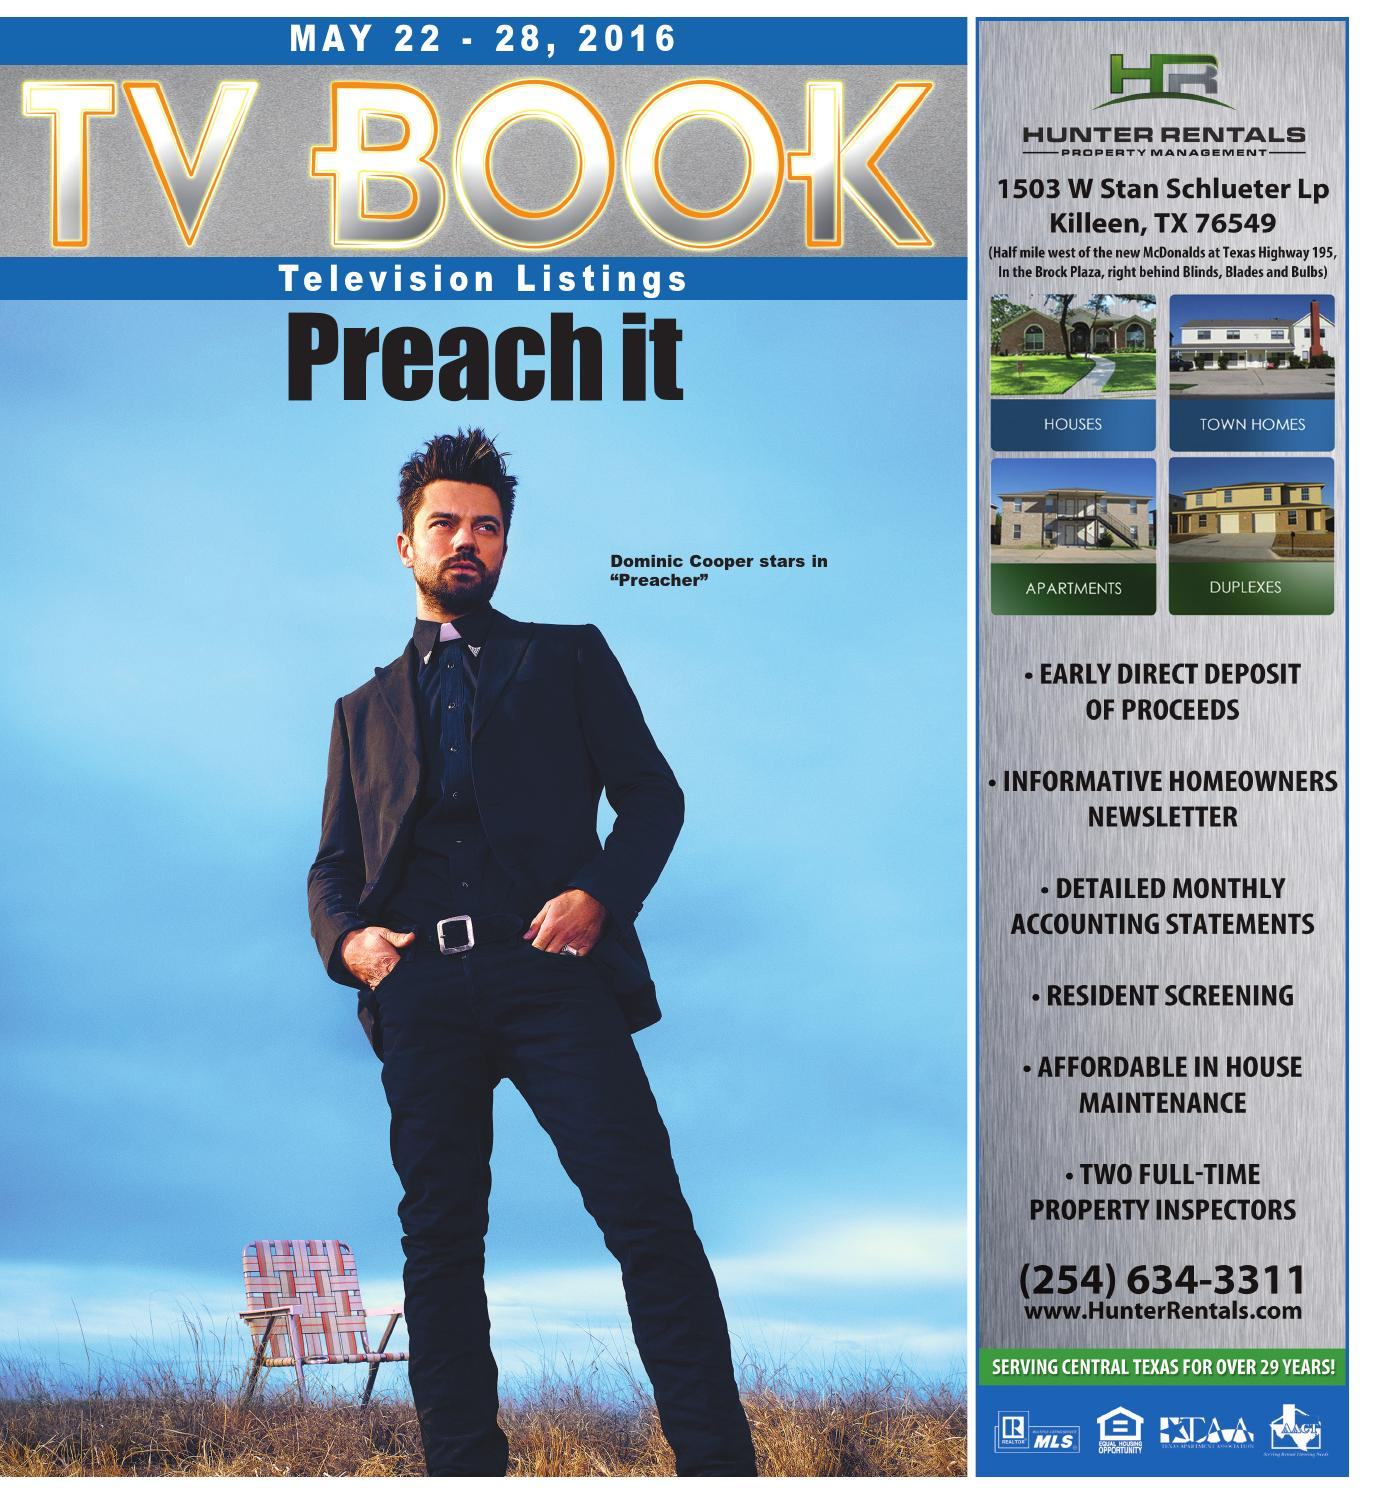 TV Book by Temple Daily Telegram - issuu